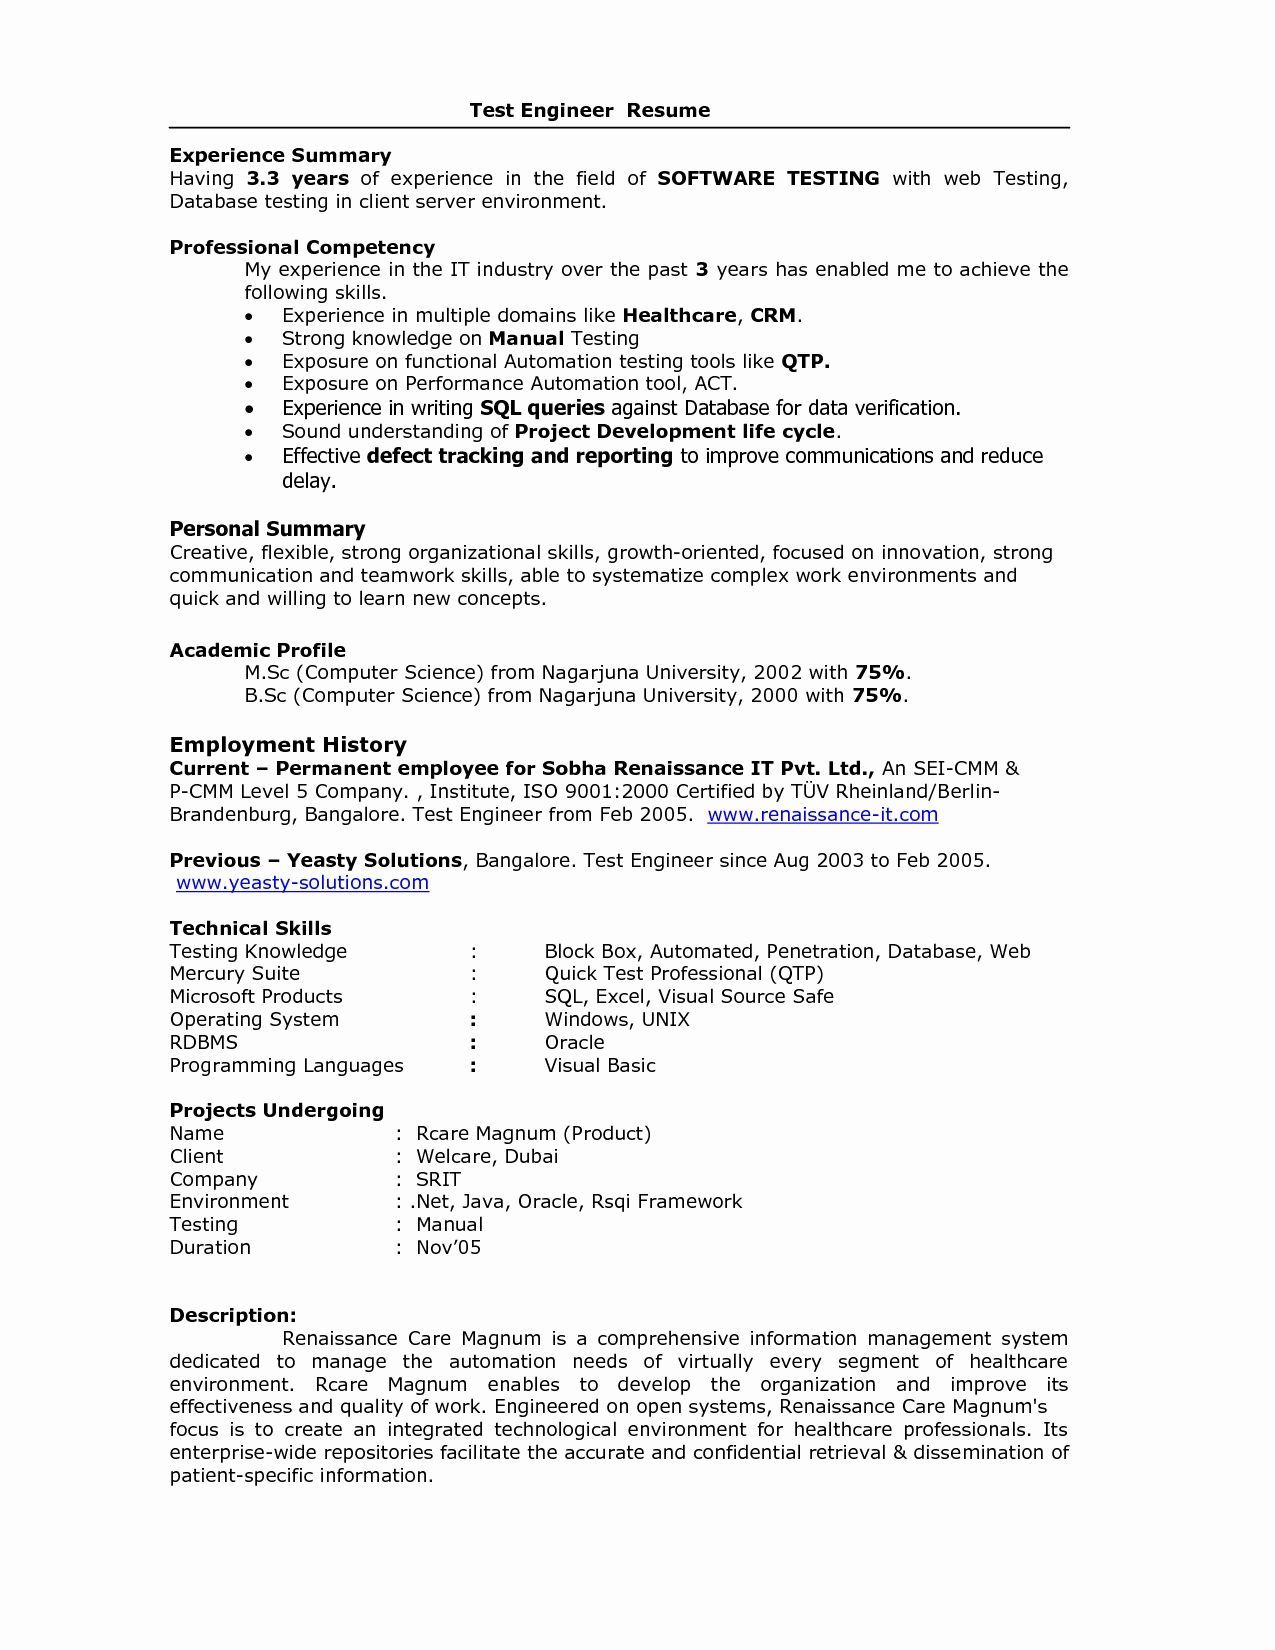 5 Years Testing Experience Sample Resume Format Best Resume